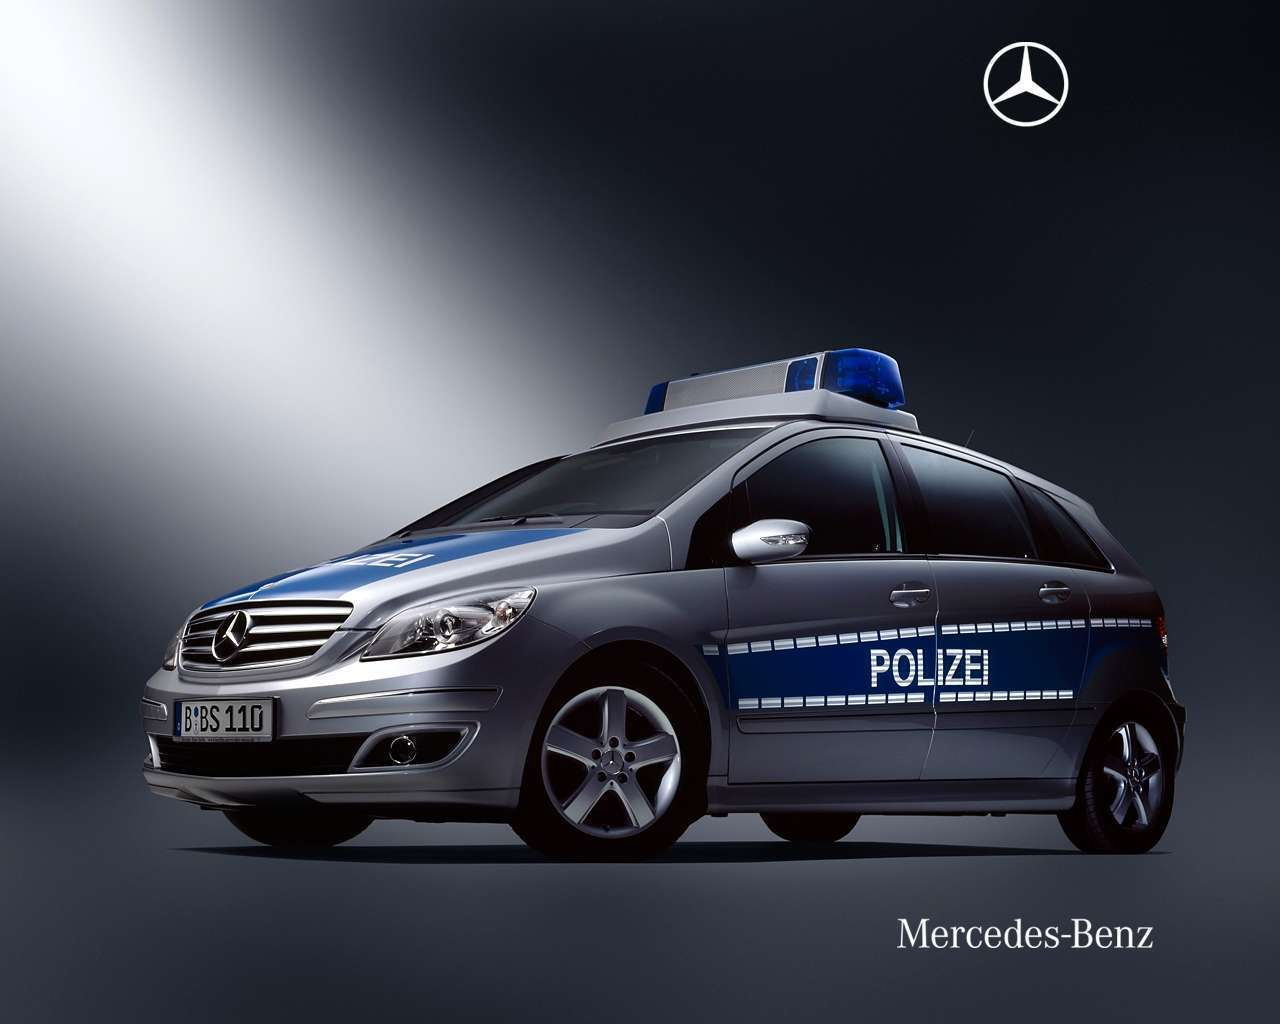 View Of German Police Wallpaper : Hd Car Wallpapers